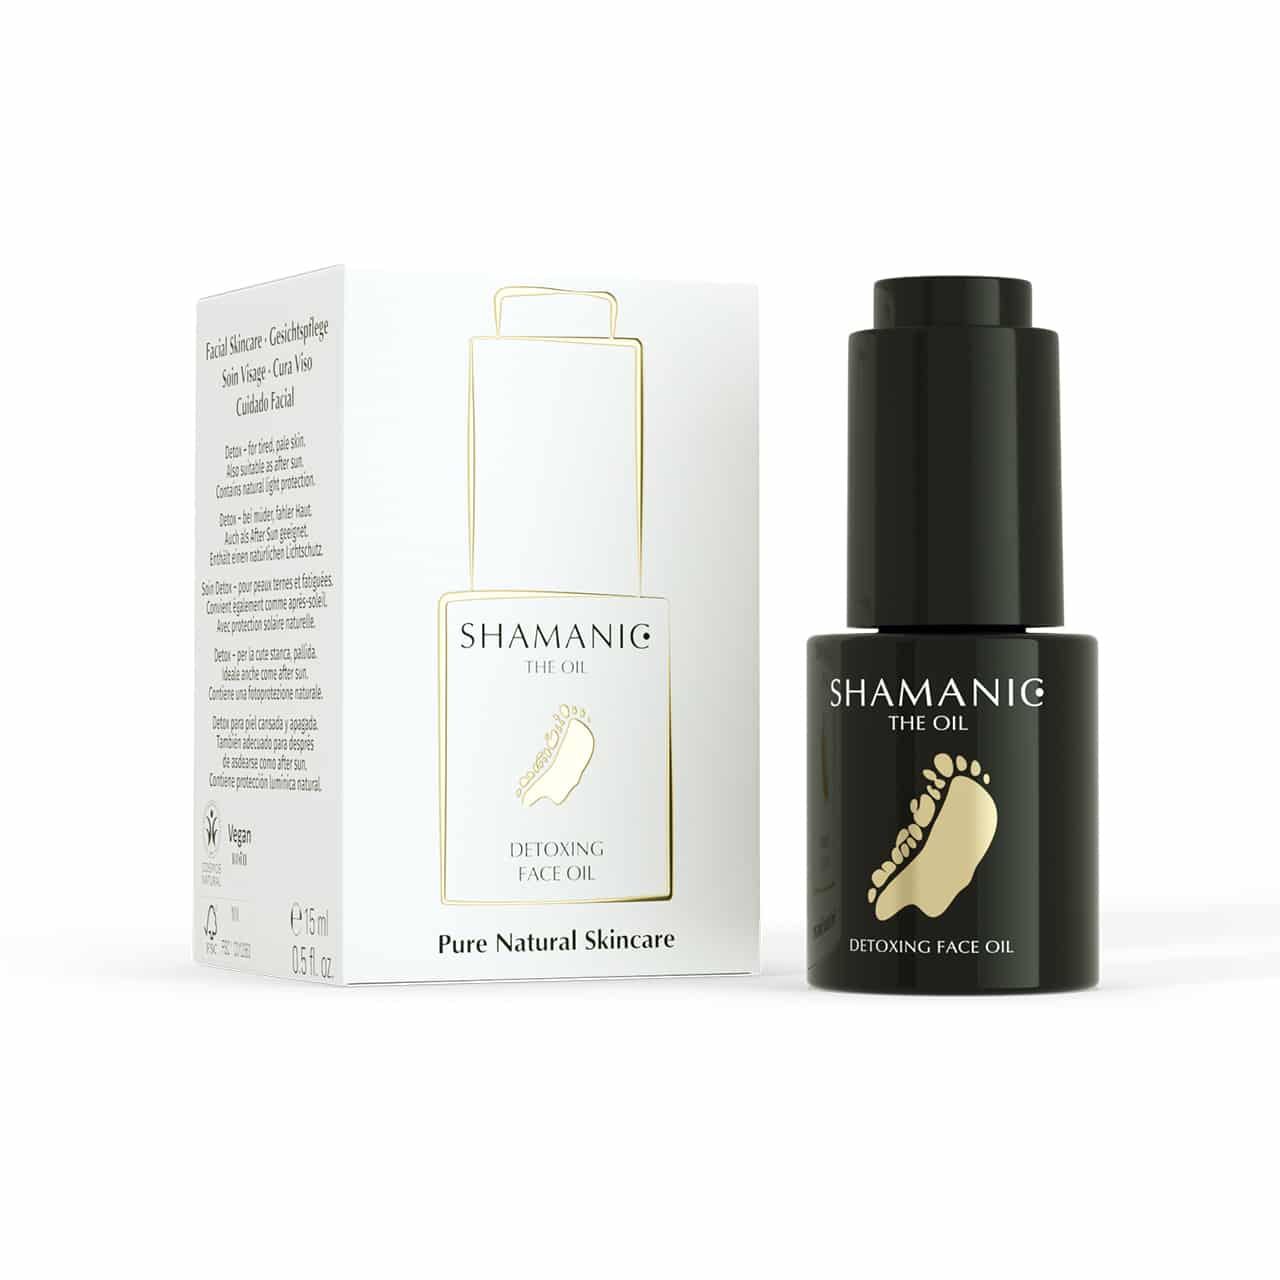 shamanic detoxing face oil